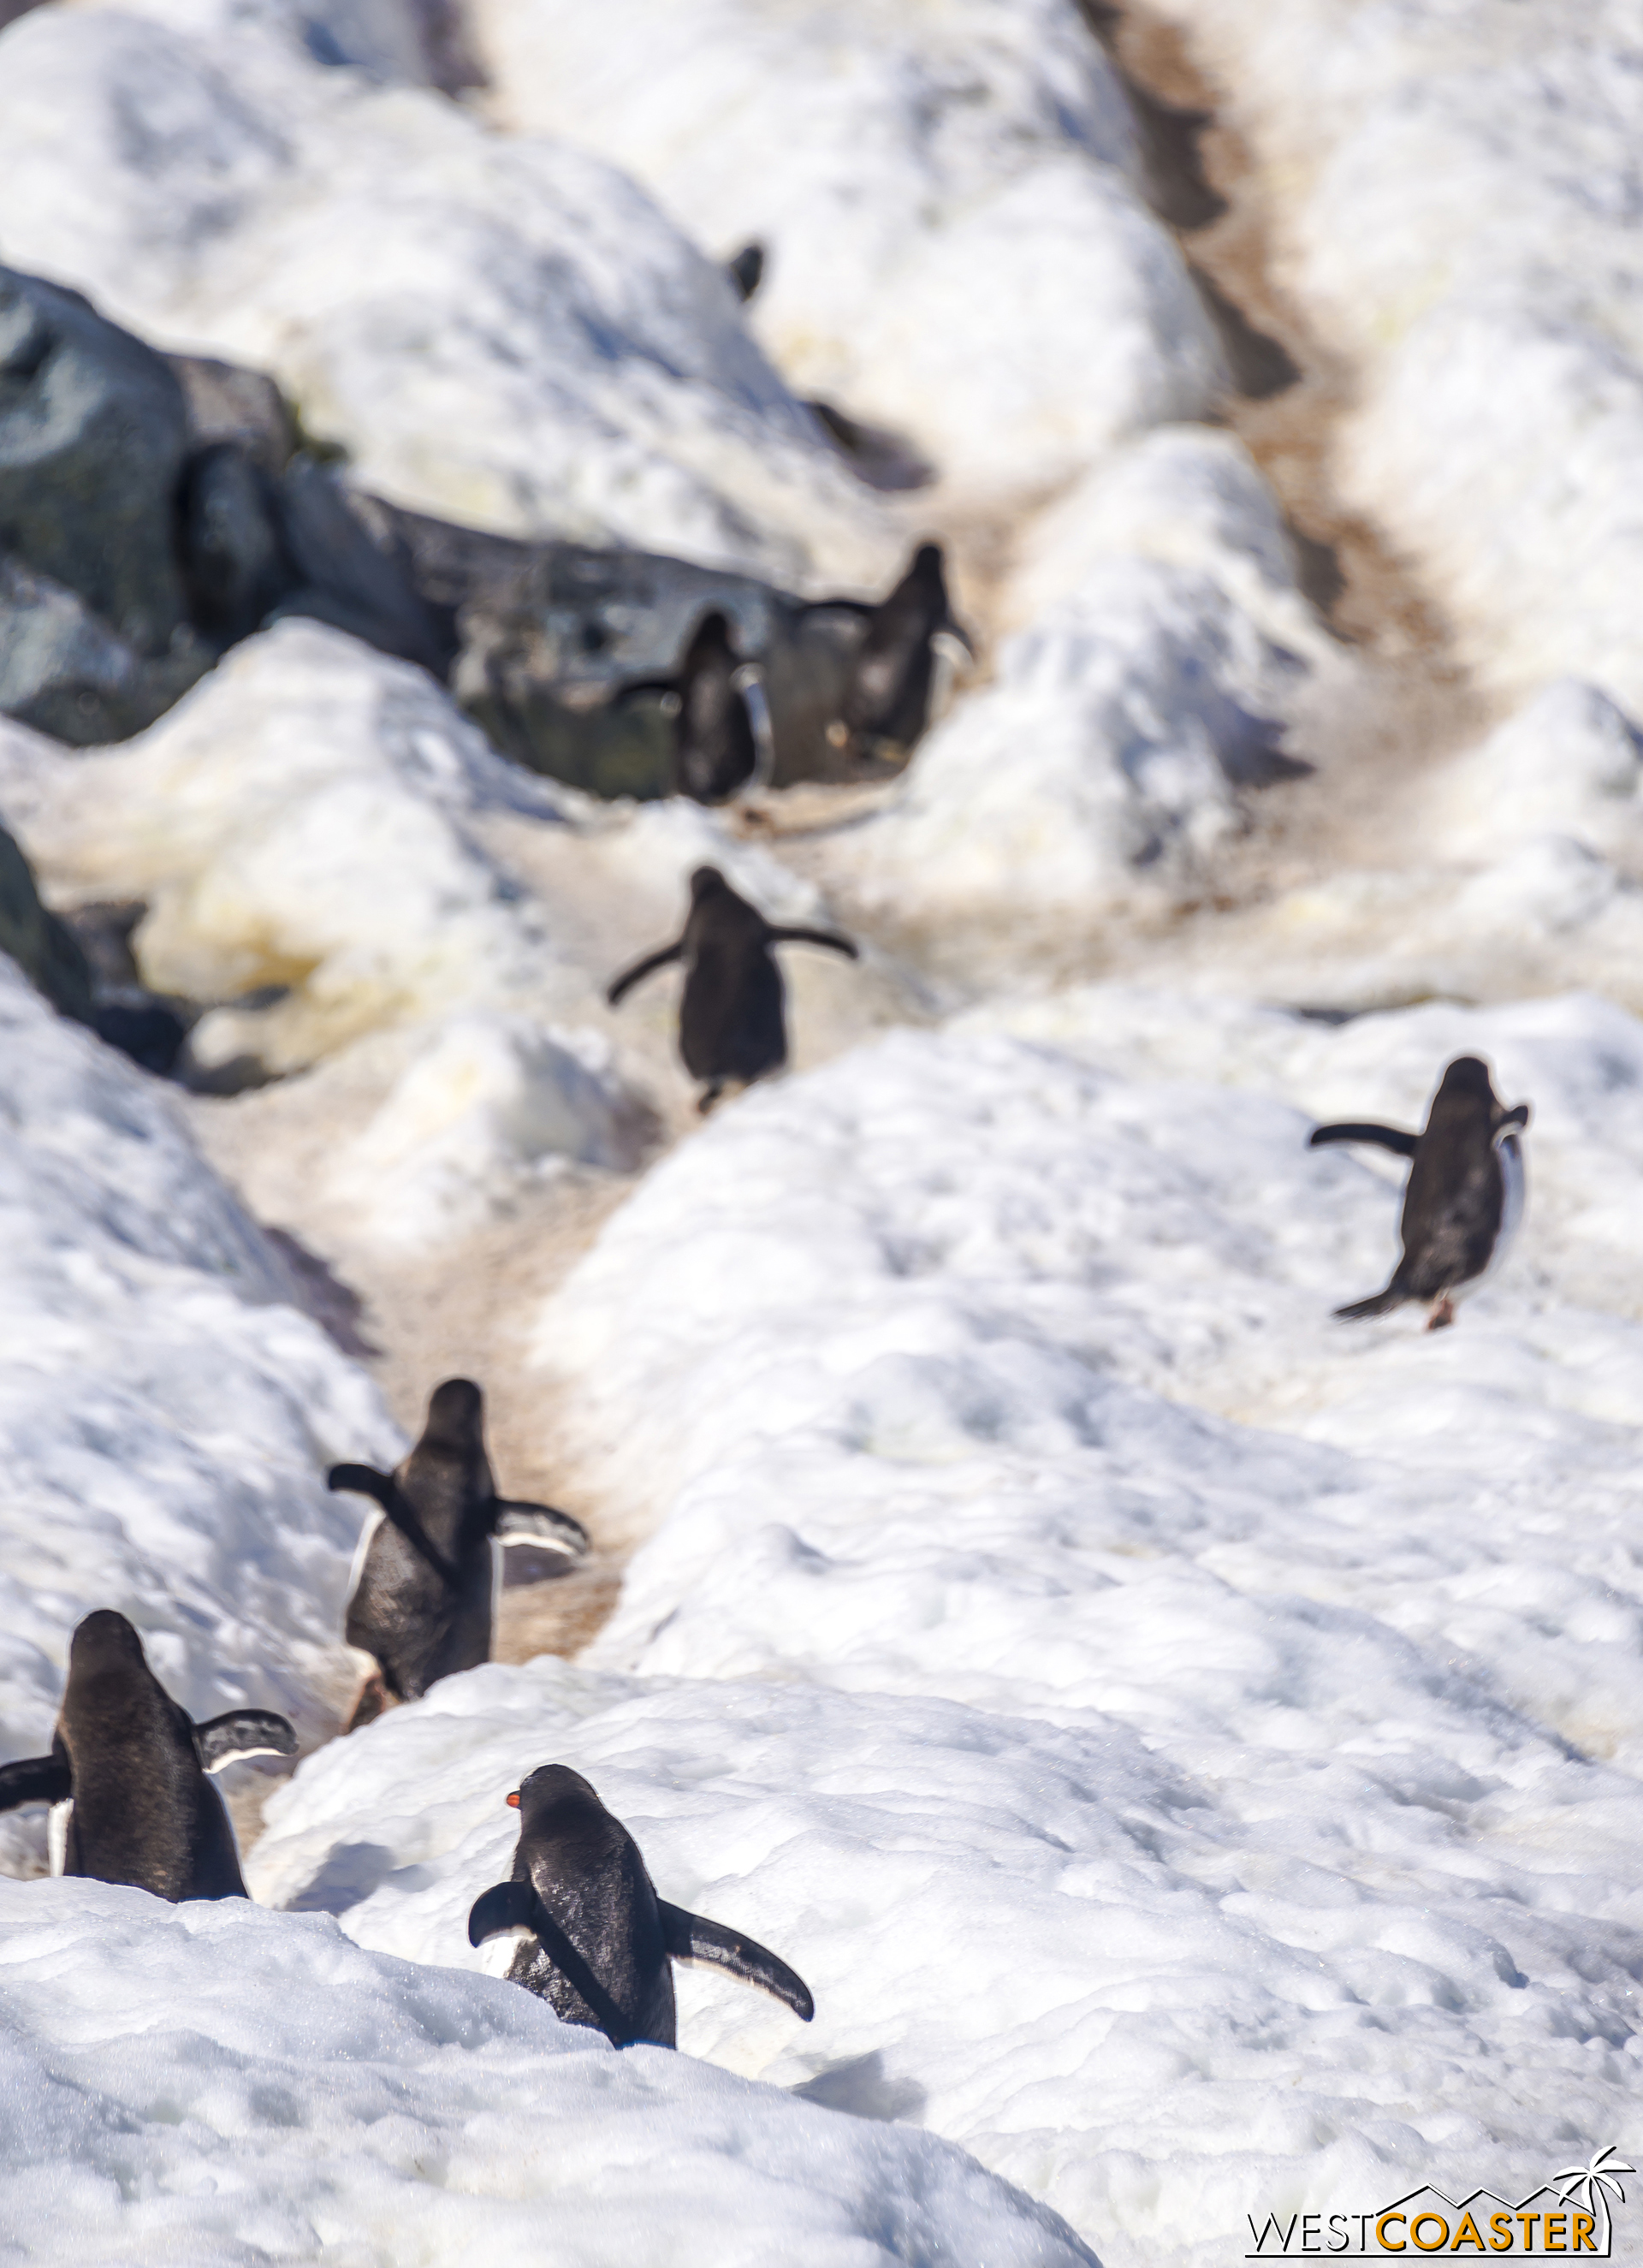 The little critters scurry up their penguin highways, back to their rookeries above.